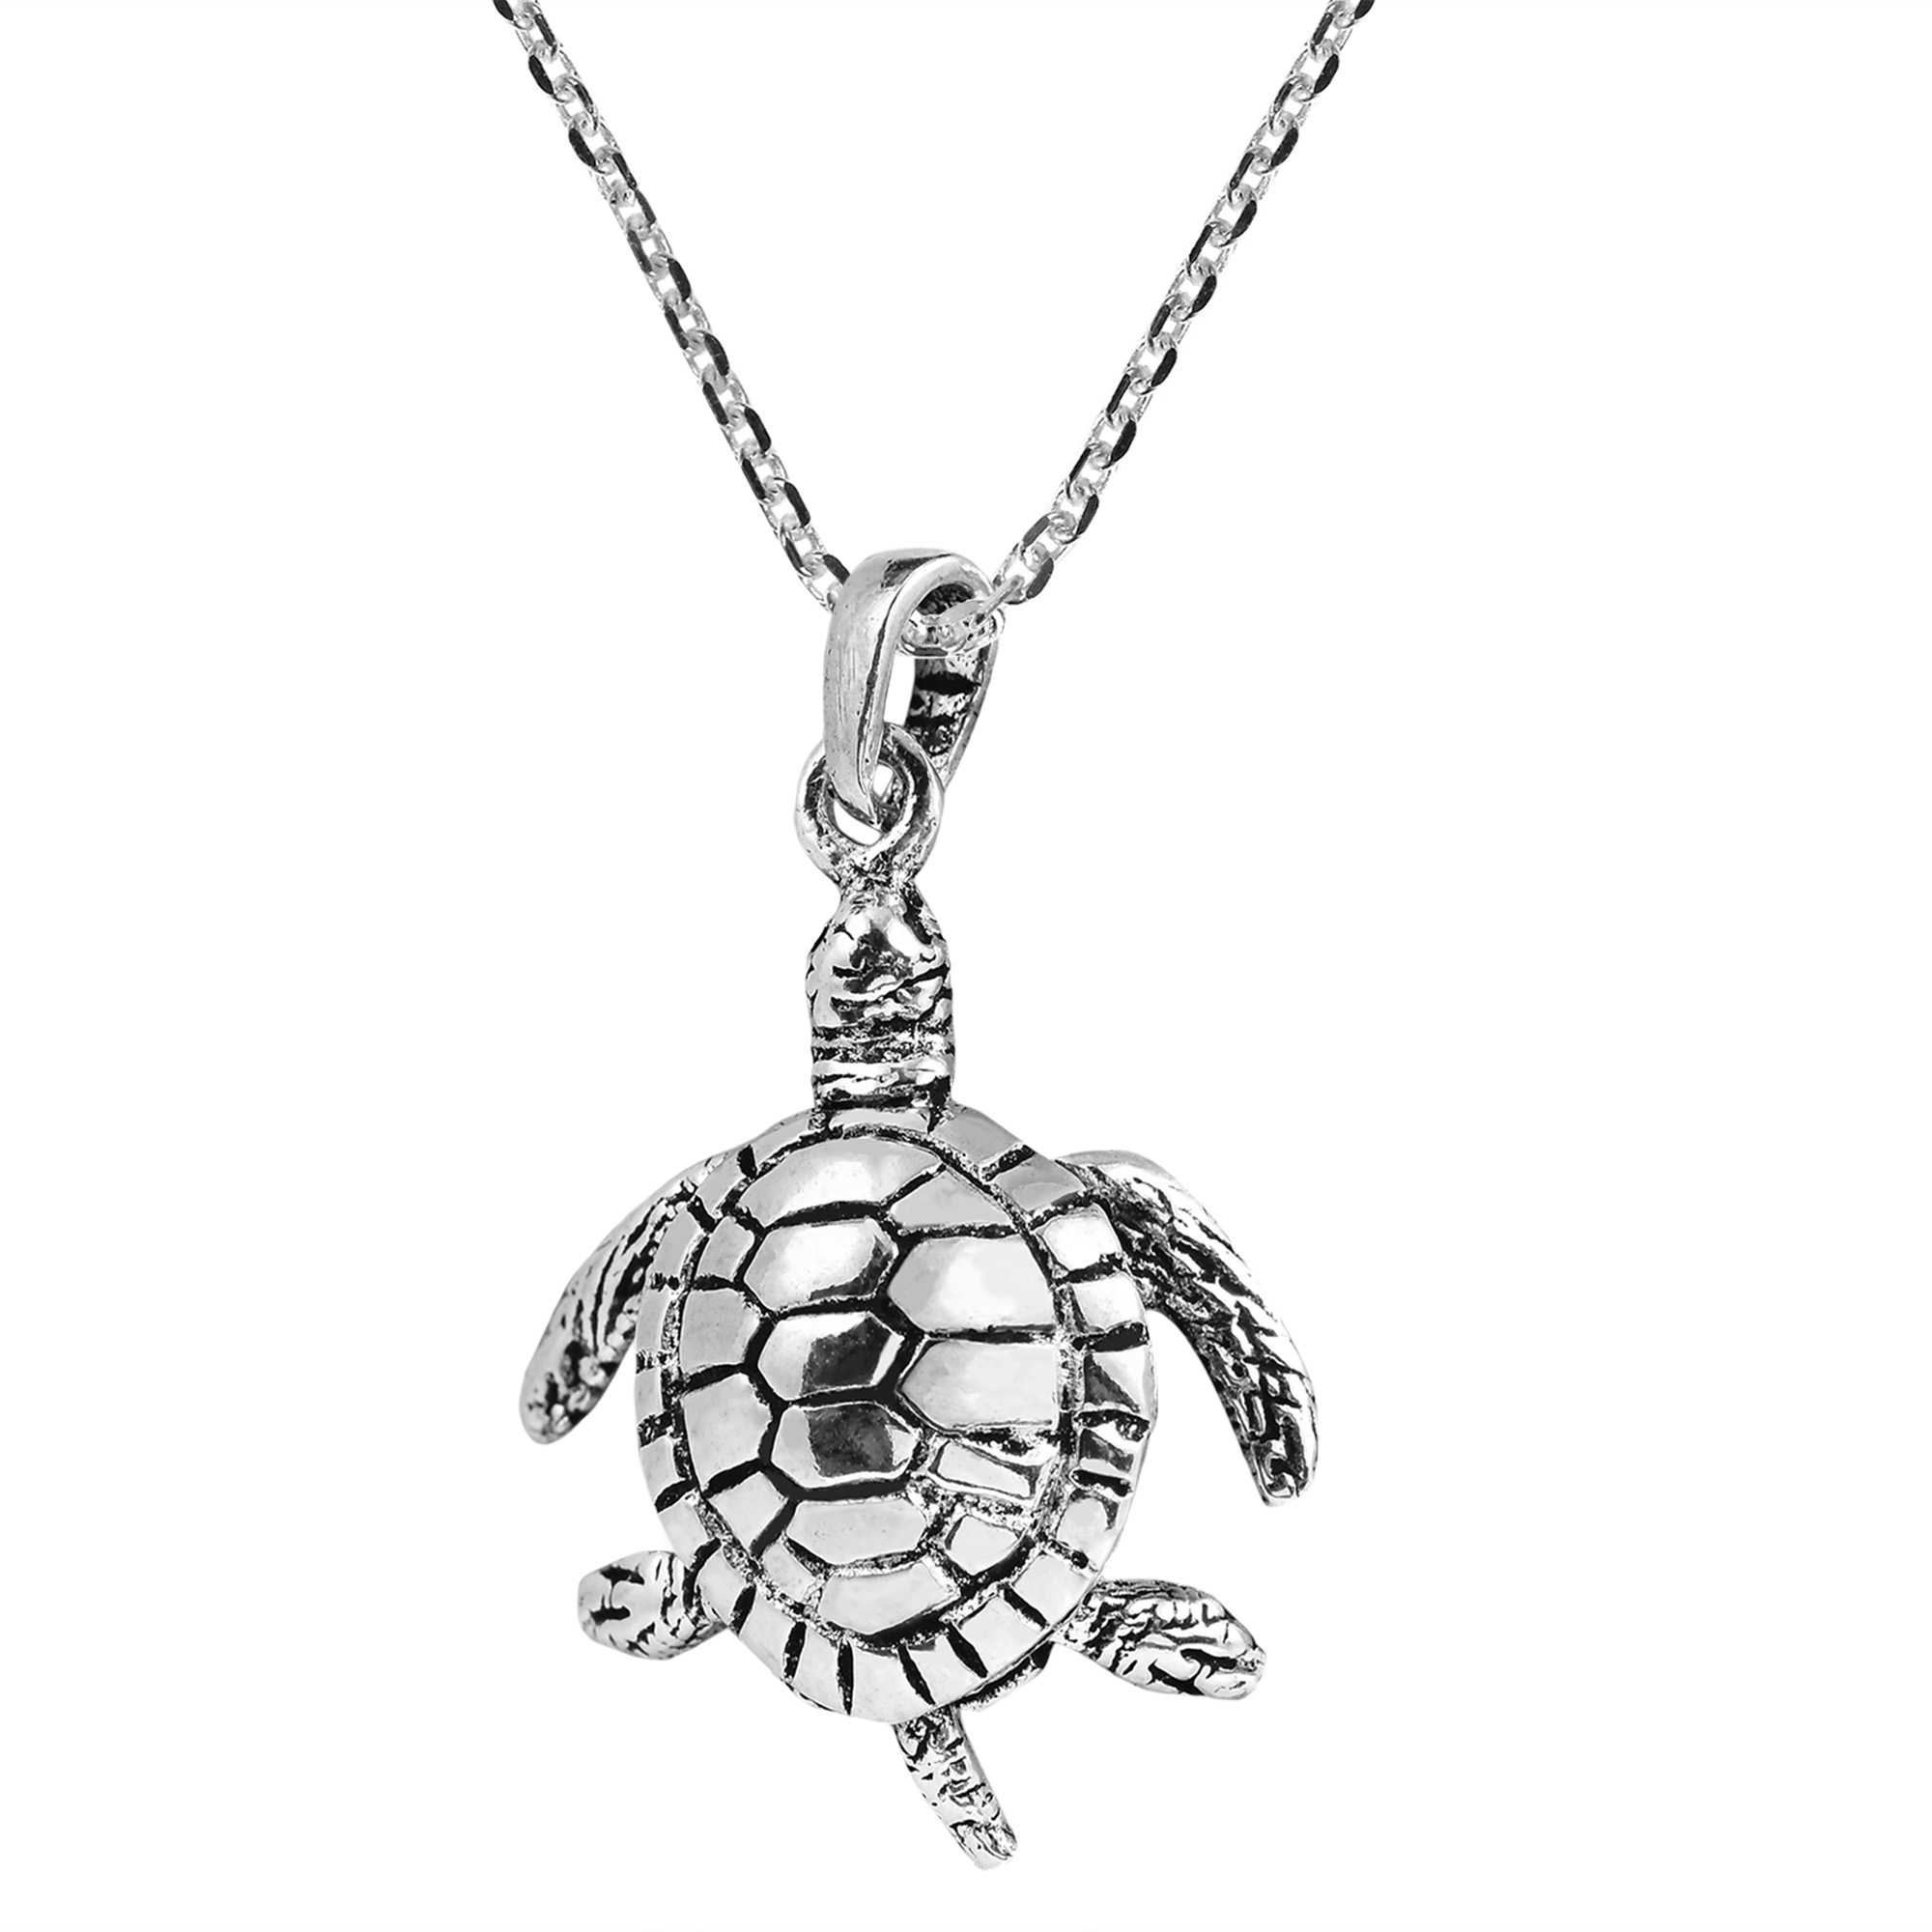 Movable sea turtle swimming sterling silver necklace aeravida with that spirit in mind artisan ploy from thailand handcrafted this adorable sterling silver necklace which features a sea turtle mozeypictures Images